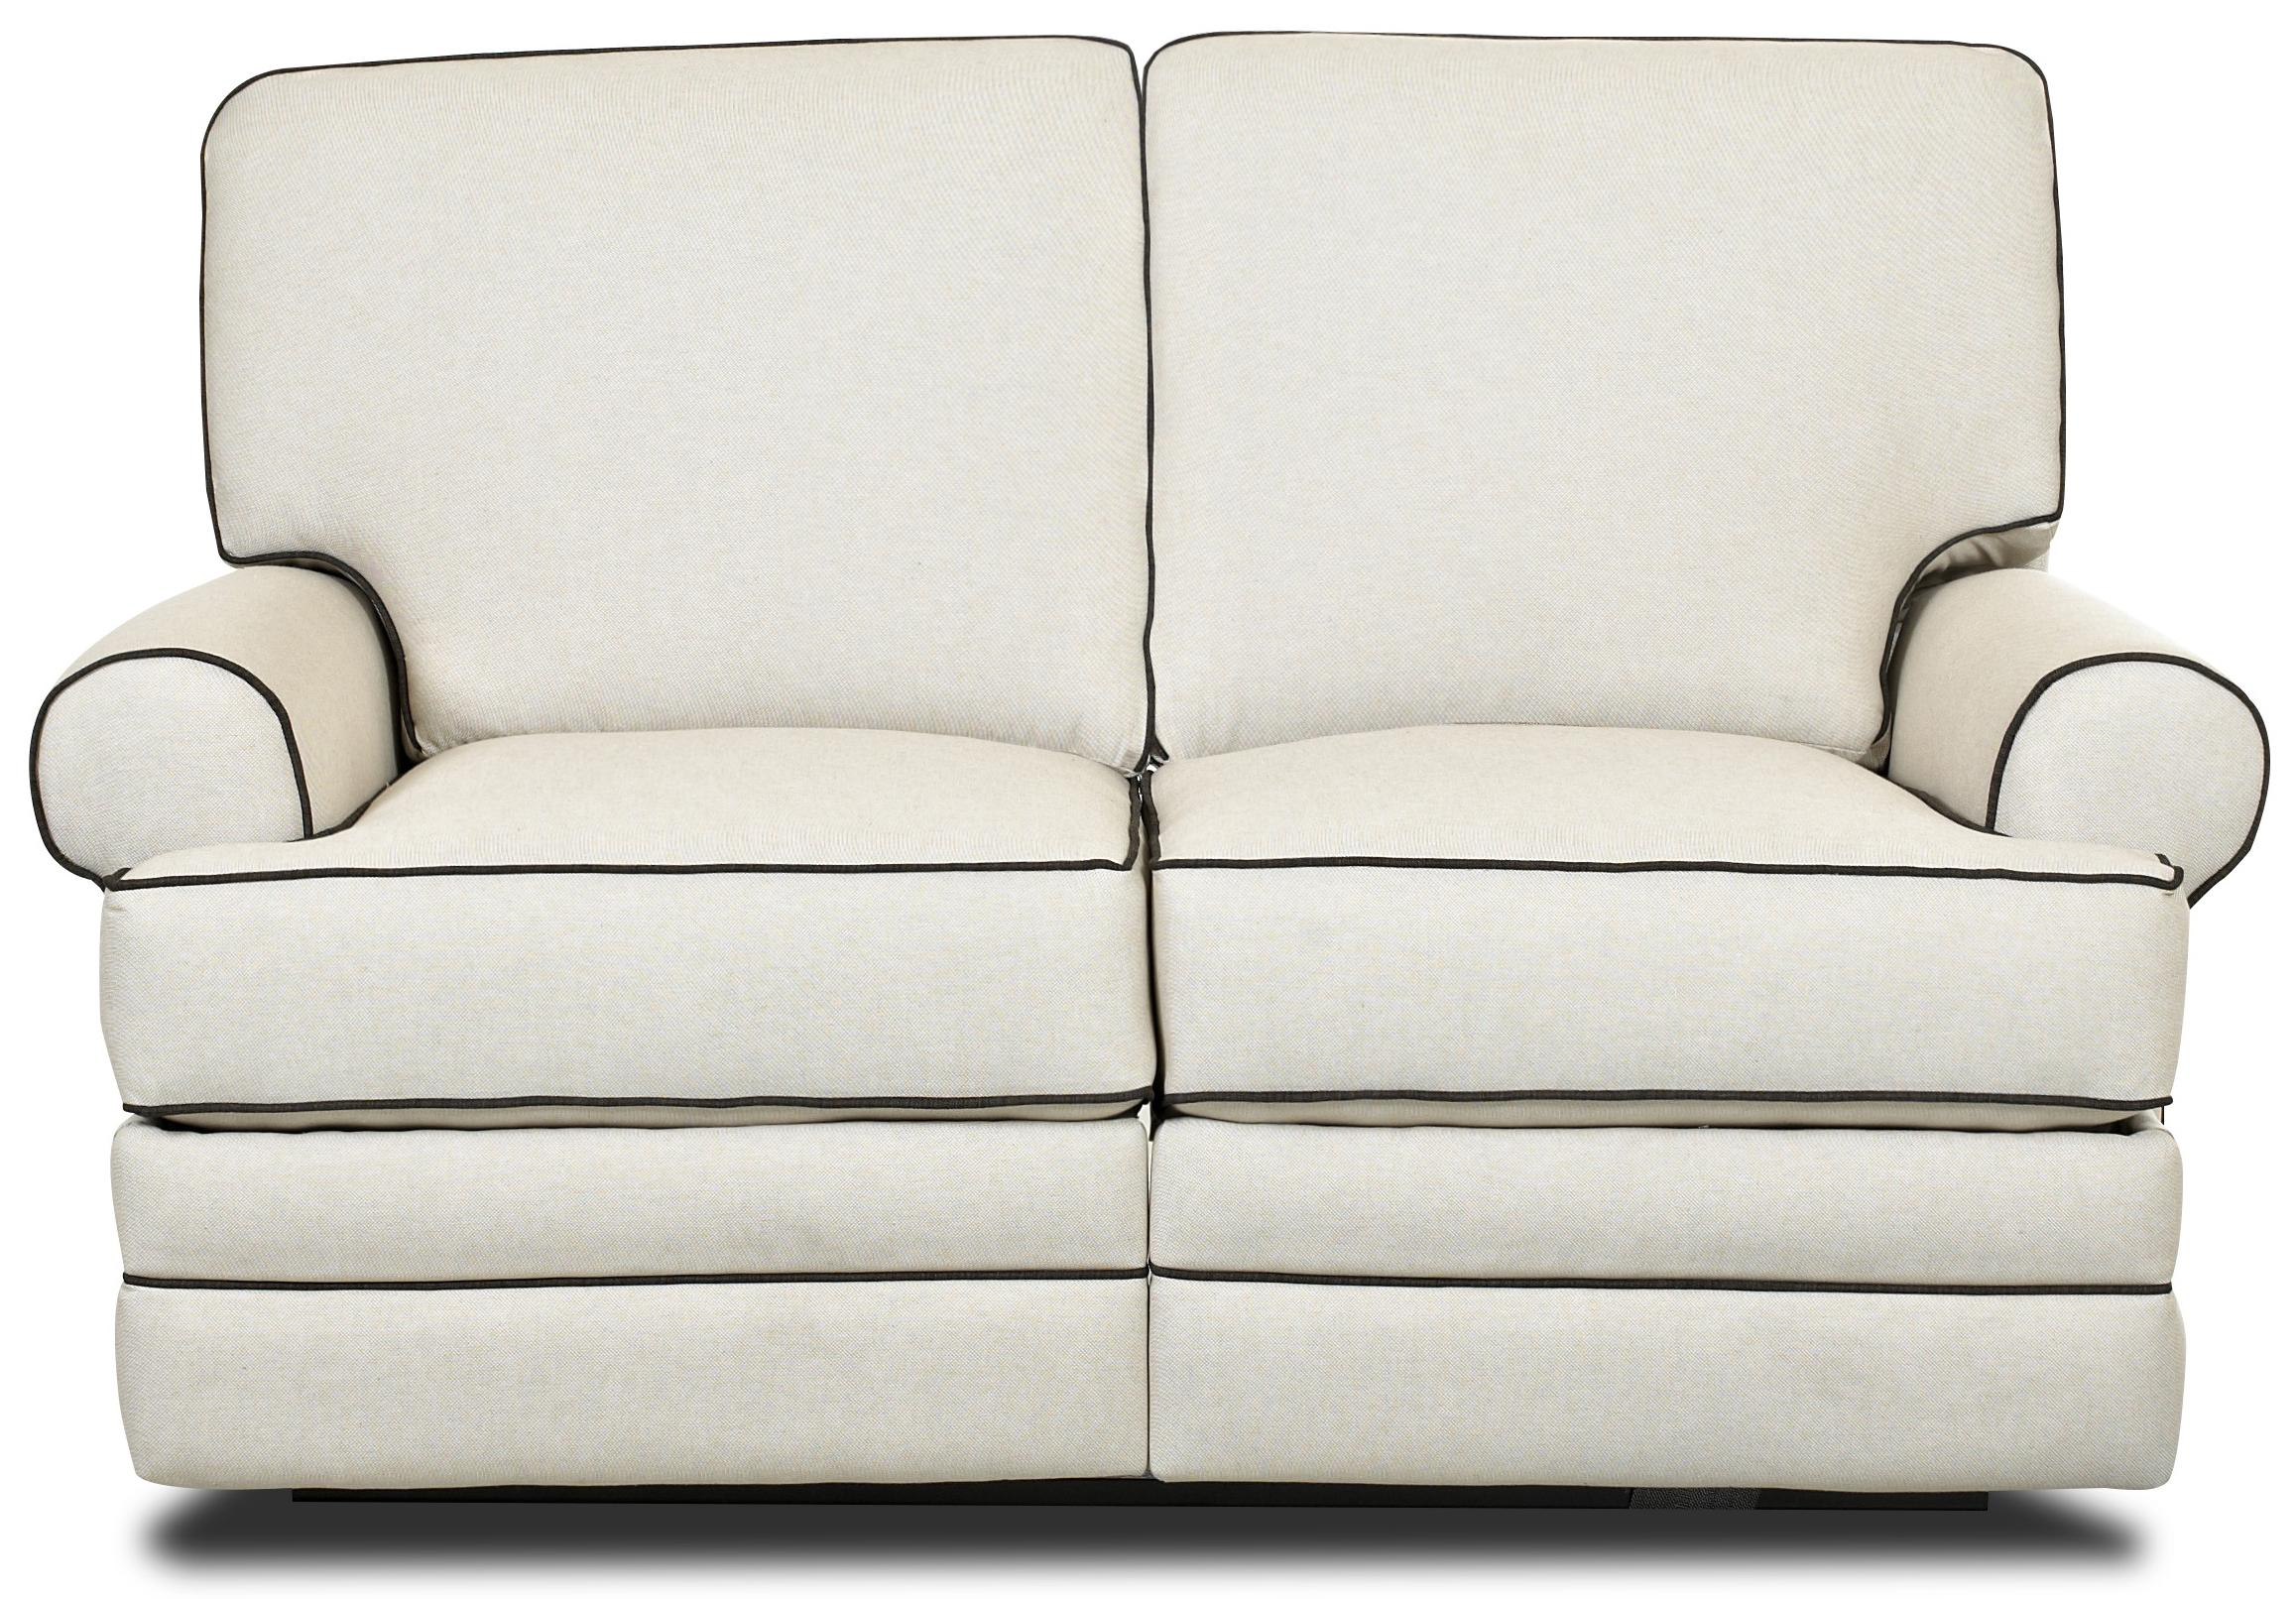 Classic Reclining Loveseat with Rolled Arms  sc 1 st  Wolf Furniture : leather loveseat power recliner - islam-shia.org